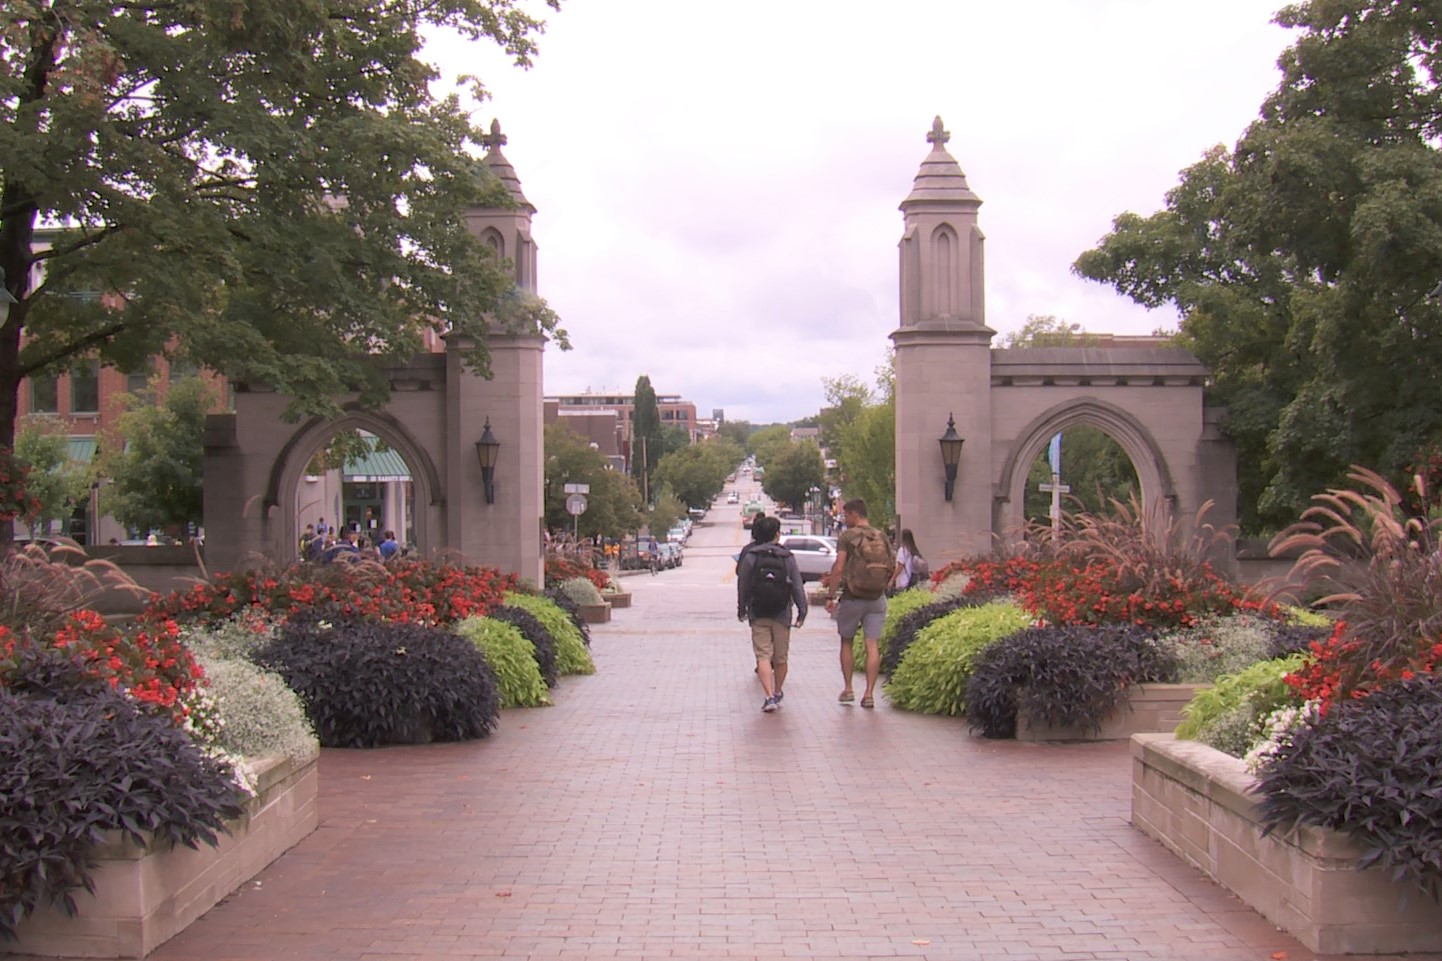 Sample Gates on IU's campus, August 2019.